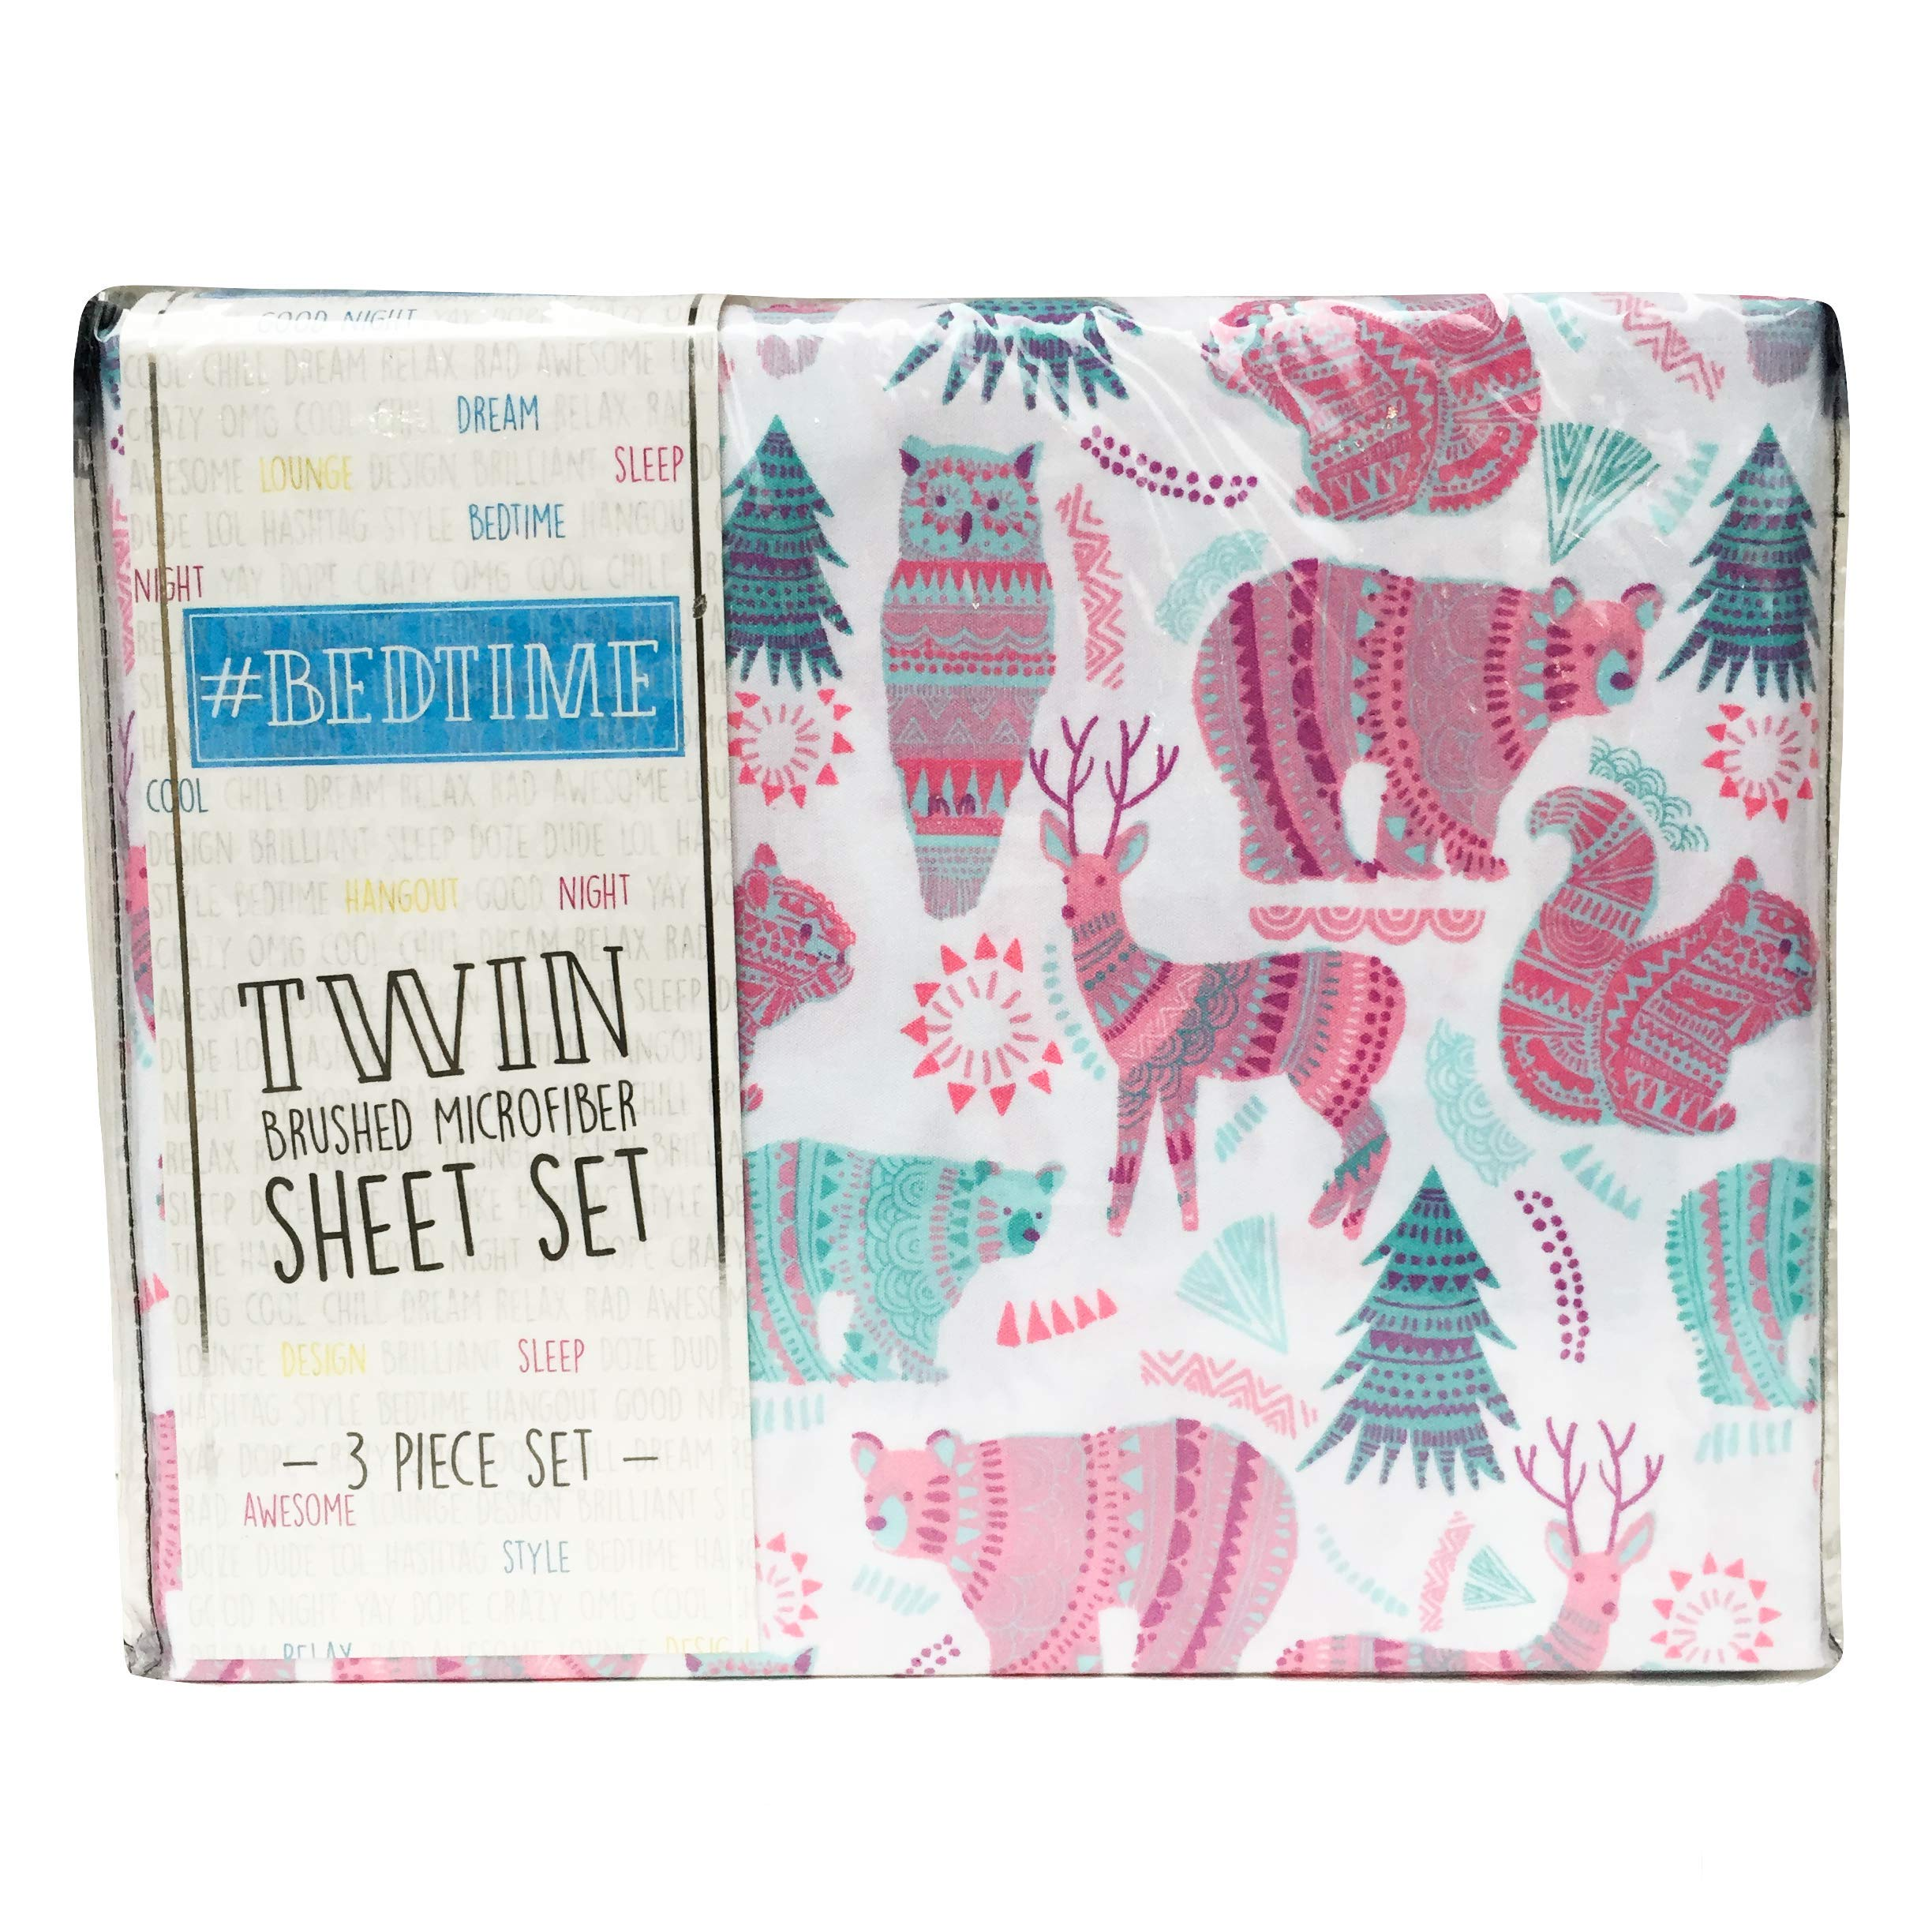 Bed time Woodland Creatures Multi Color Twin Sheet Set - Bear, Owl, Deer Sheets (Forest Animals) by Bed time (Image #1)